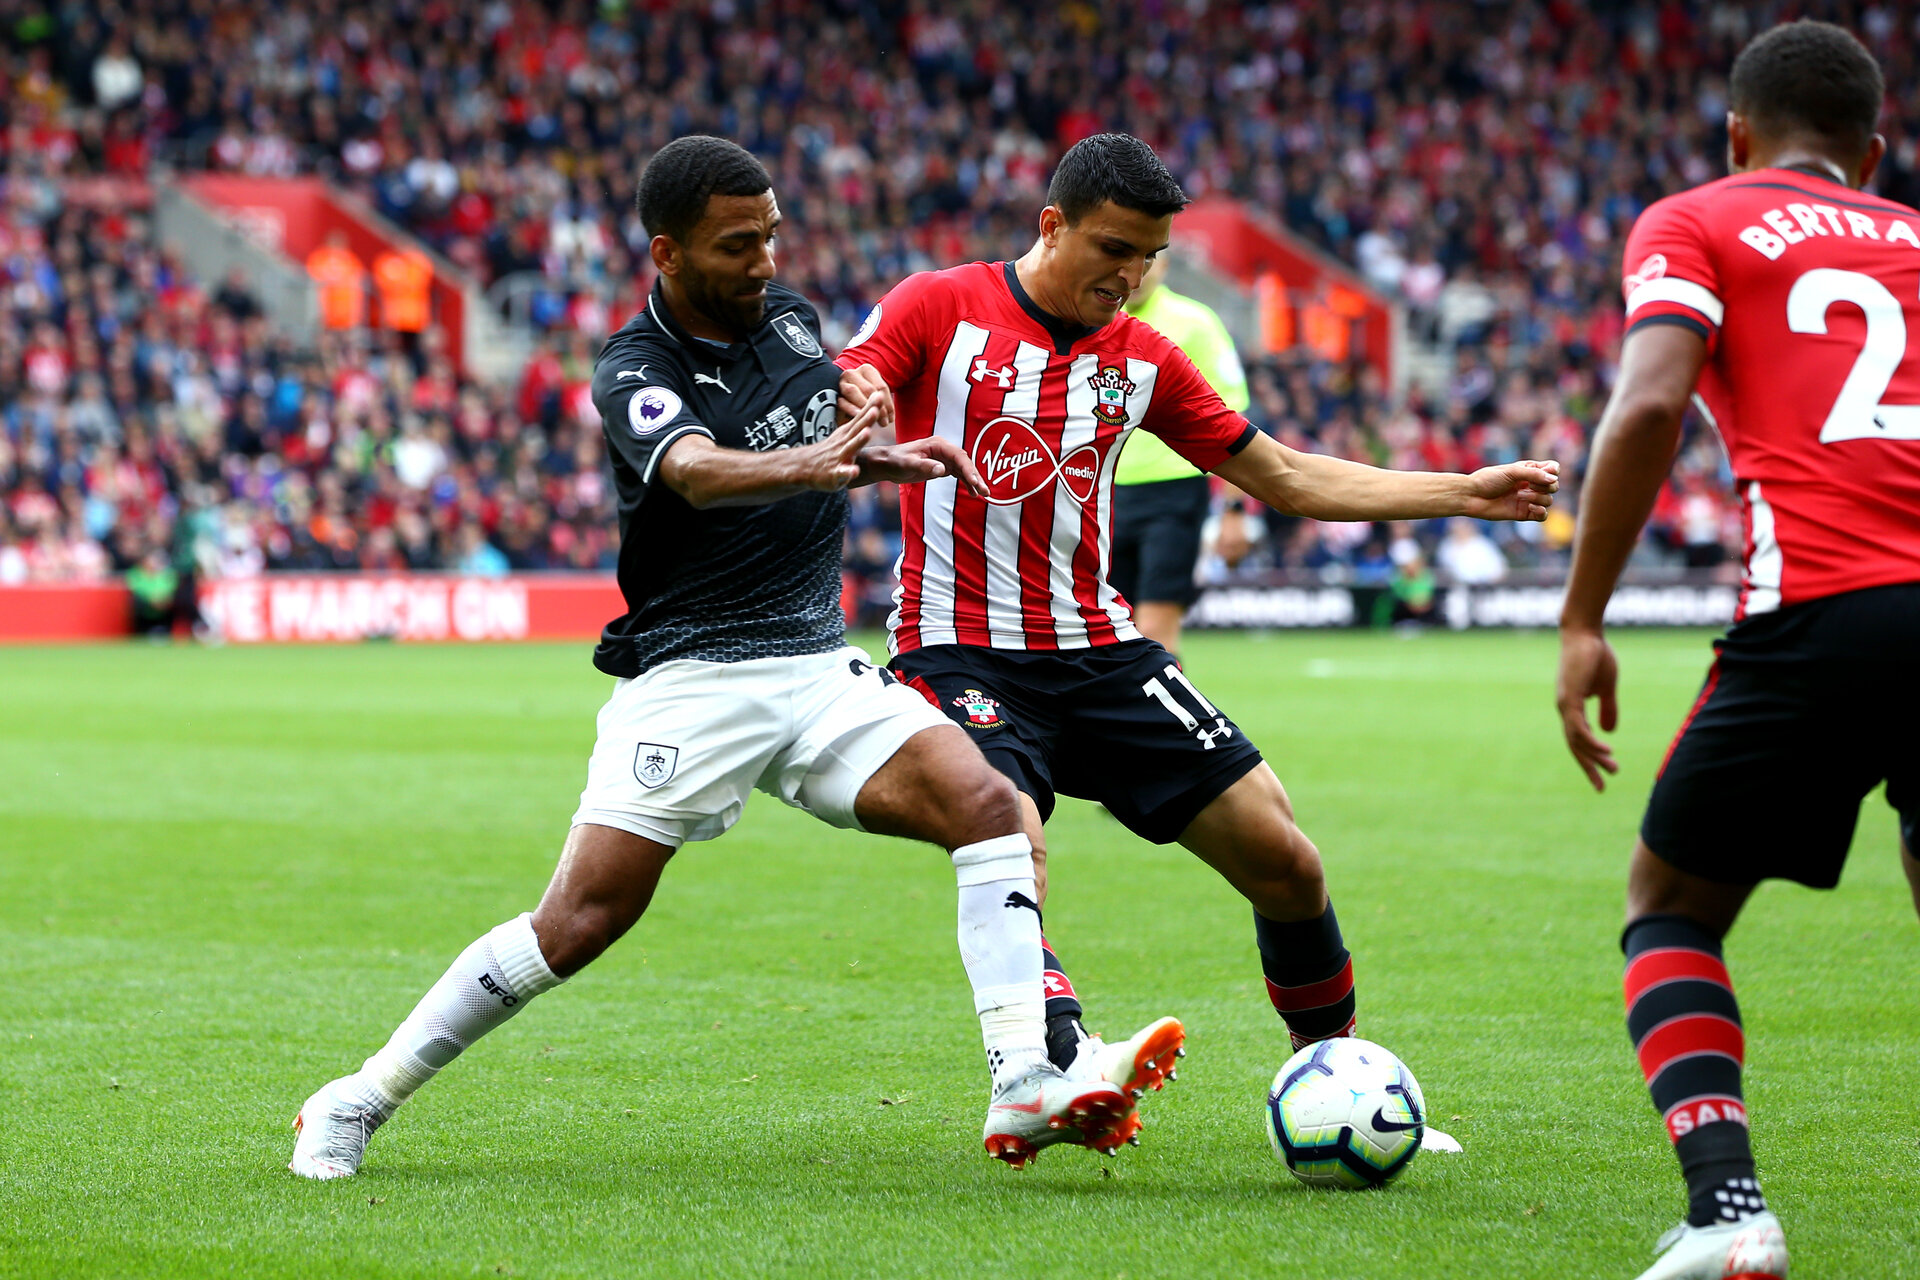 SOUTHAMPTON, ENGLAND - AUGUST 12: Mohamed Elyounoussi (middle) of Southampton FC  during the Premier League match between Southampton FC and Burnley FC at St Mary's Stadium on August 12, 2018 in Southampton, United Kingdom. (Photo by James Bridle - Southampton FC/Southampton FC via Getty Images)